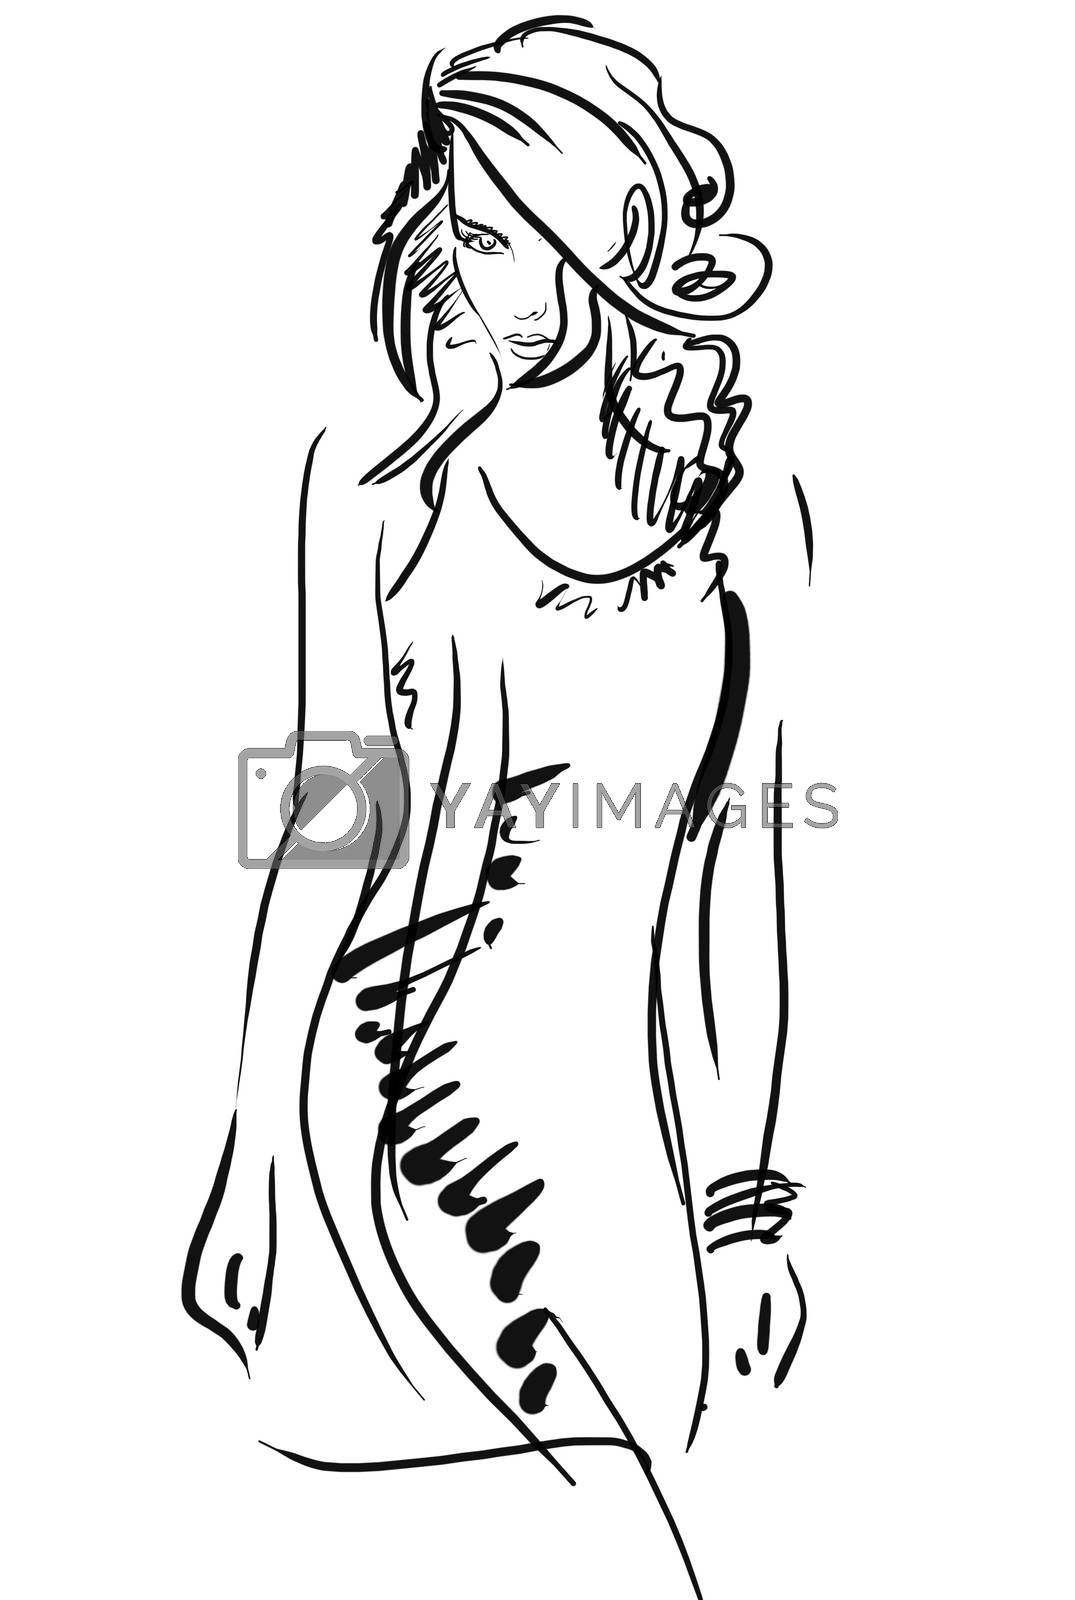 Graphic, sketch hand drawing, logo. Fashion style, youth beauty female. Sexy woman pose,  girl model for design.  Black and white.